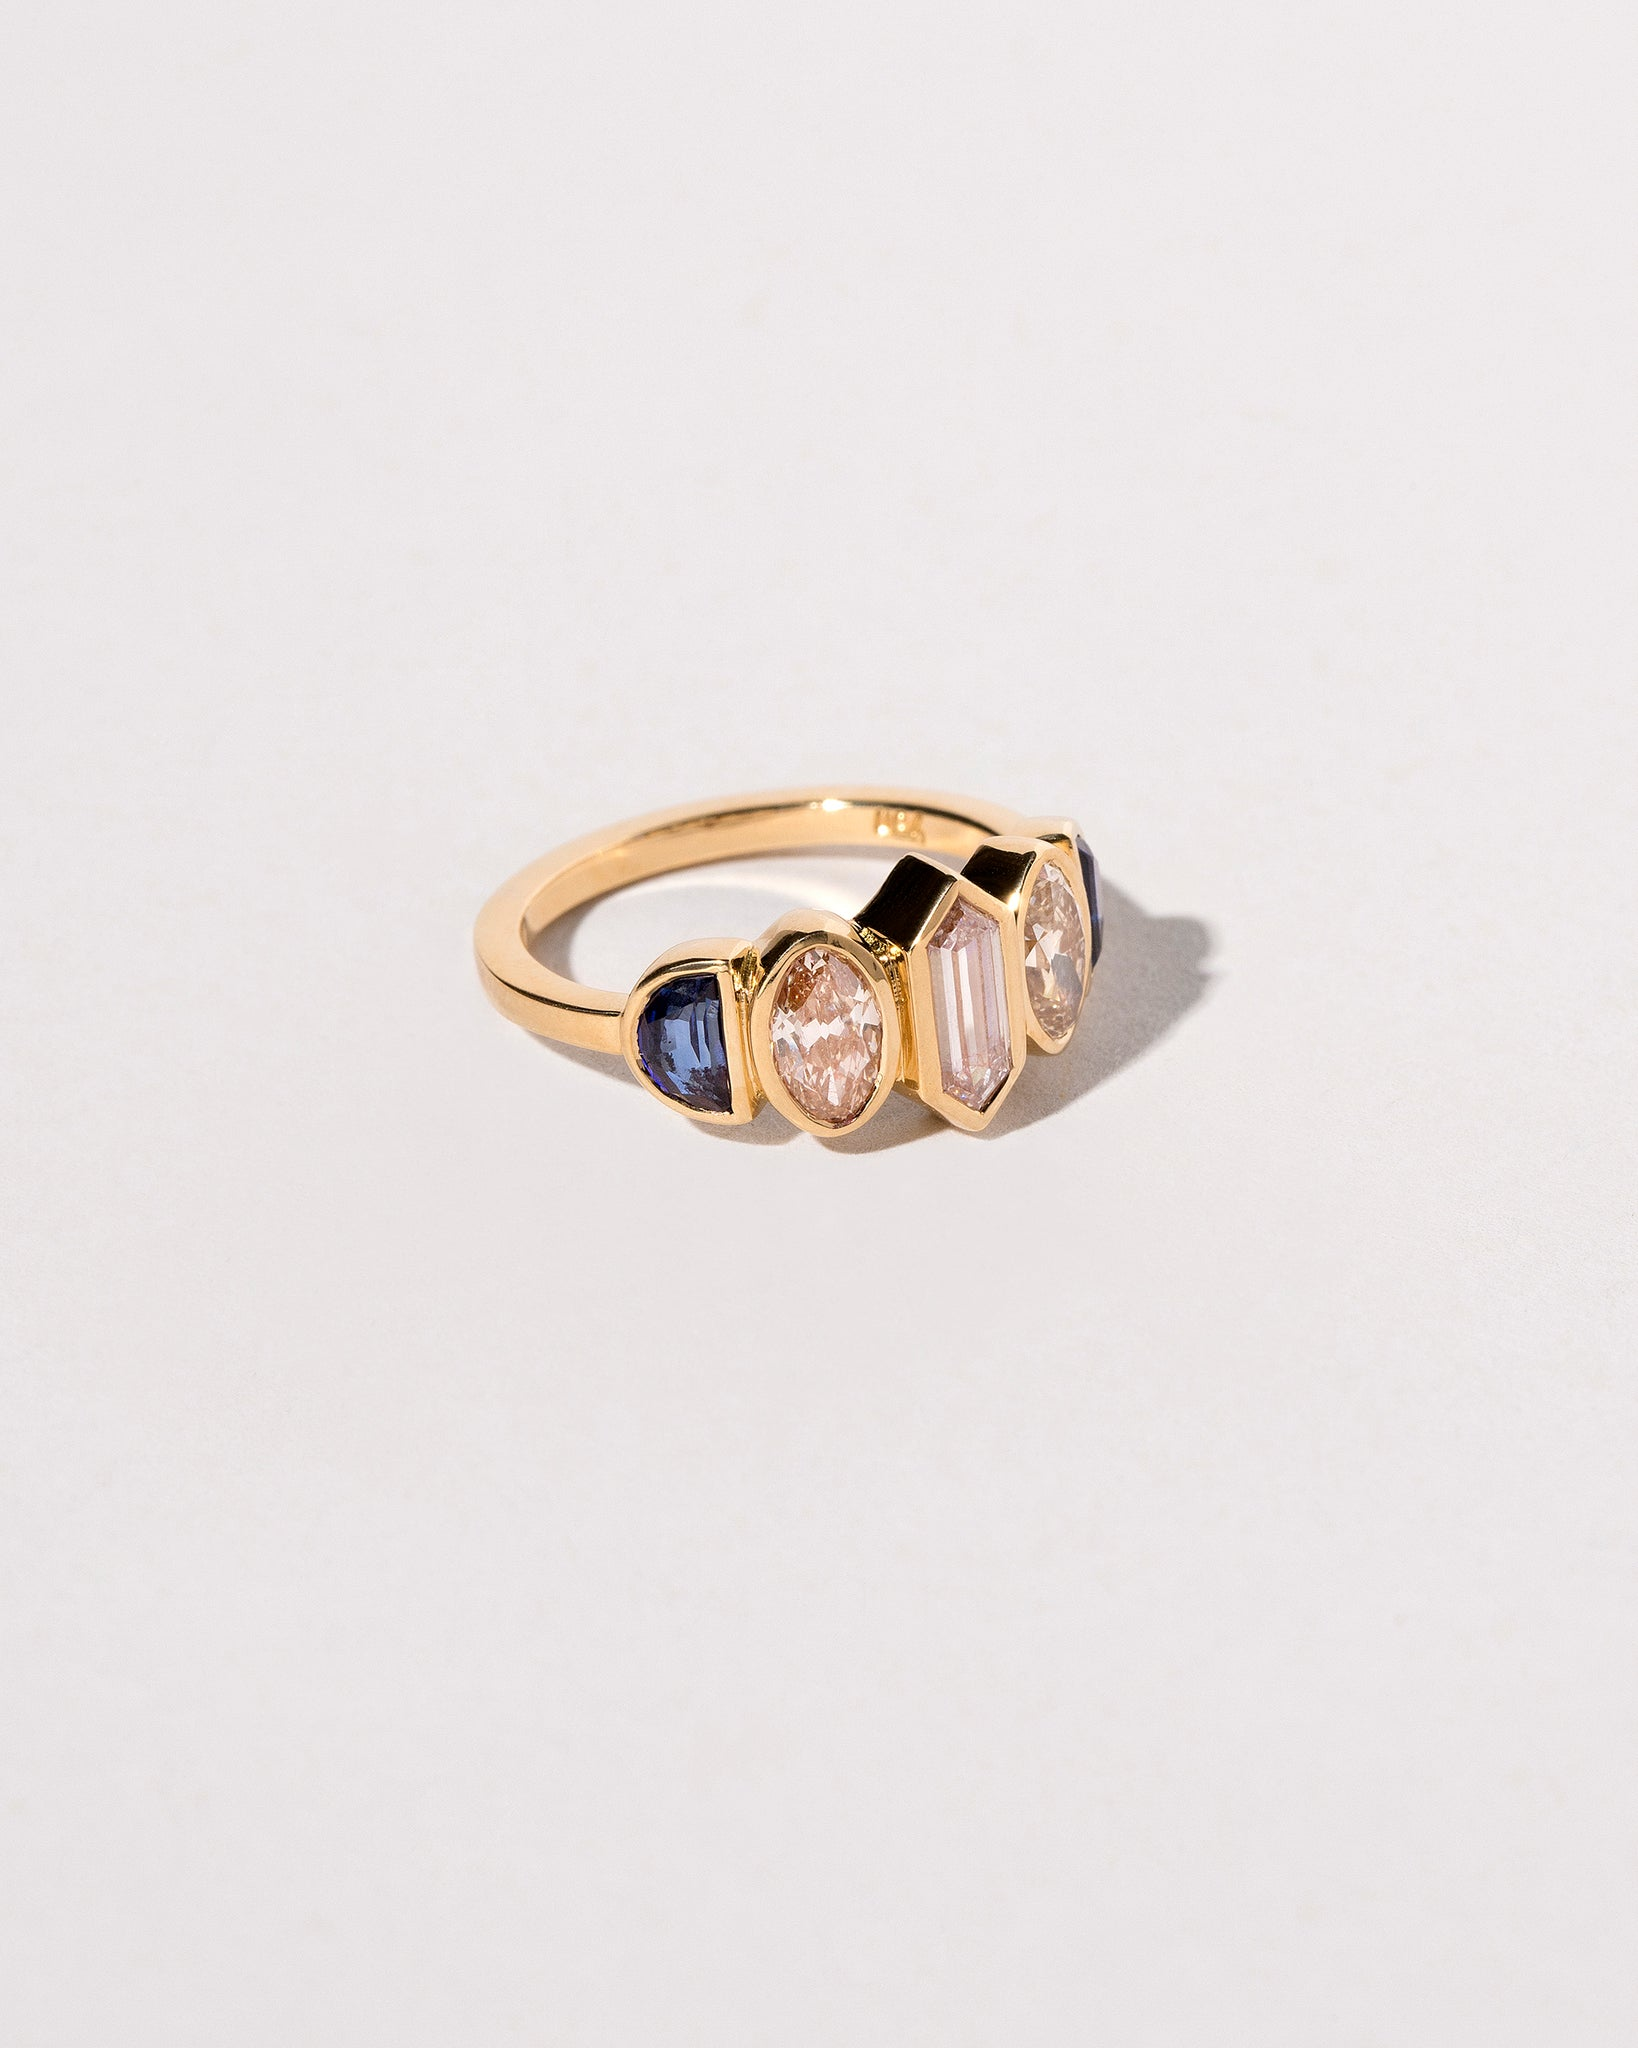 Side view of the Larkspur Ring